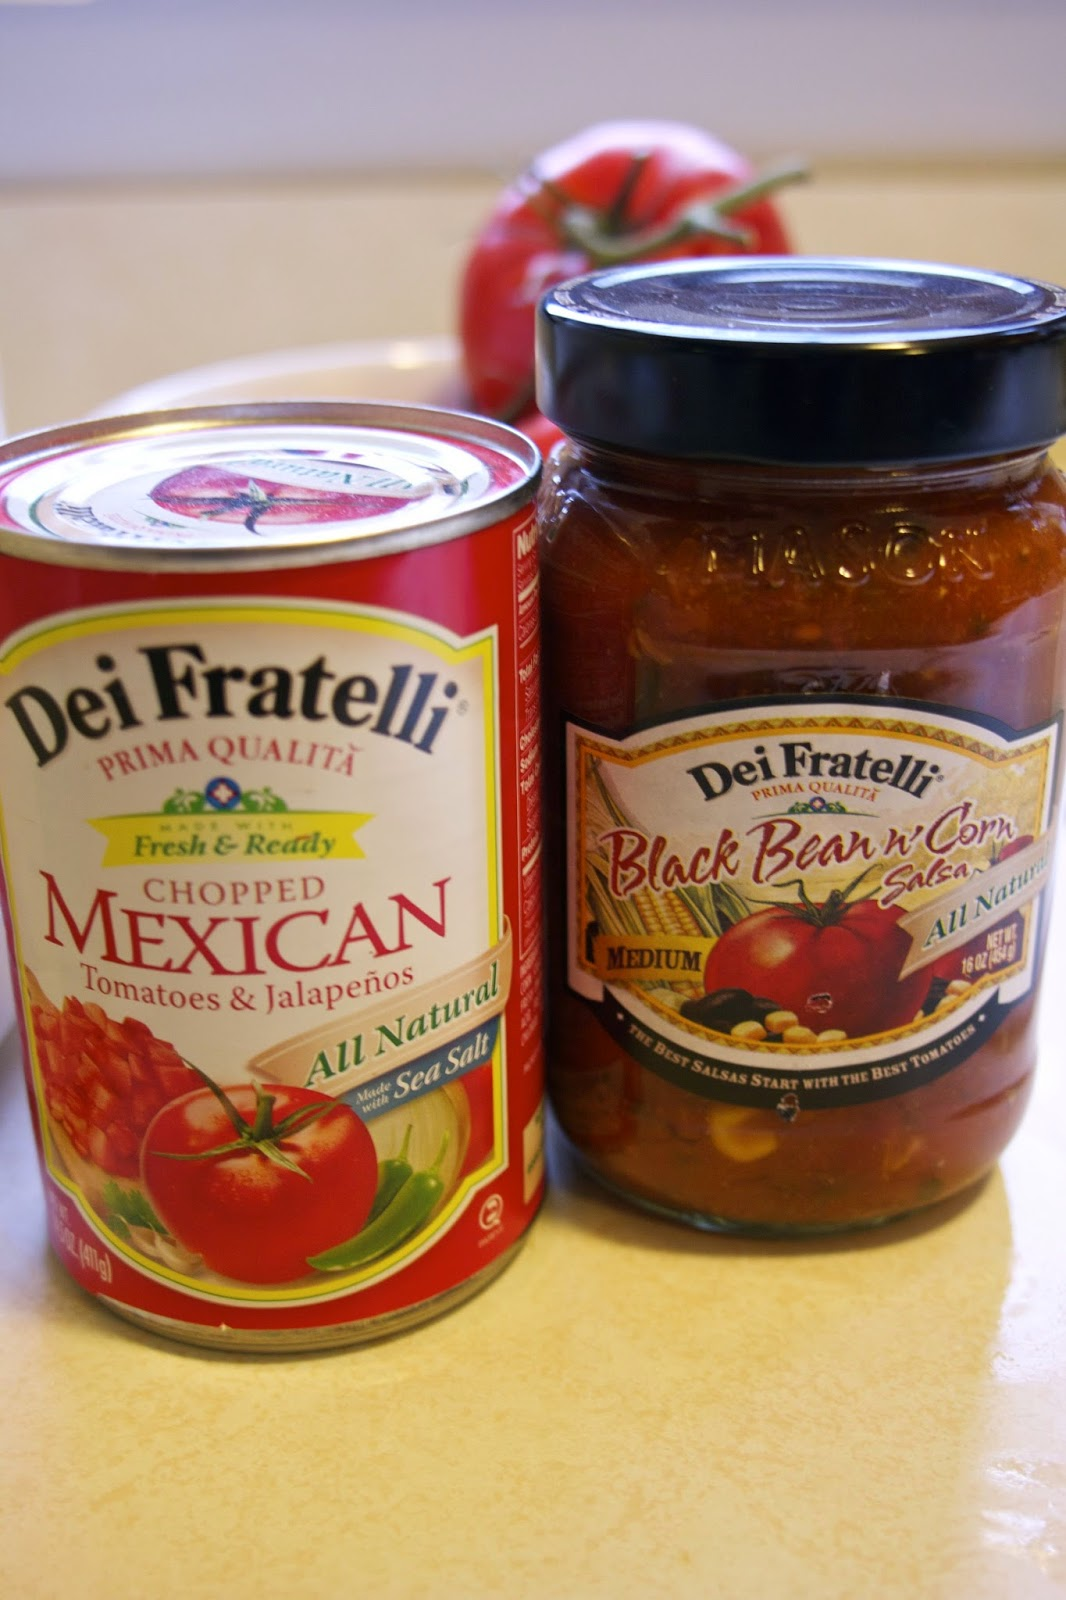 Dei Fratelli Mexican Products: simplelivingeating.com